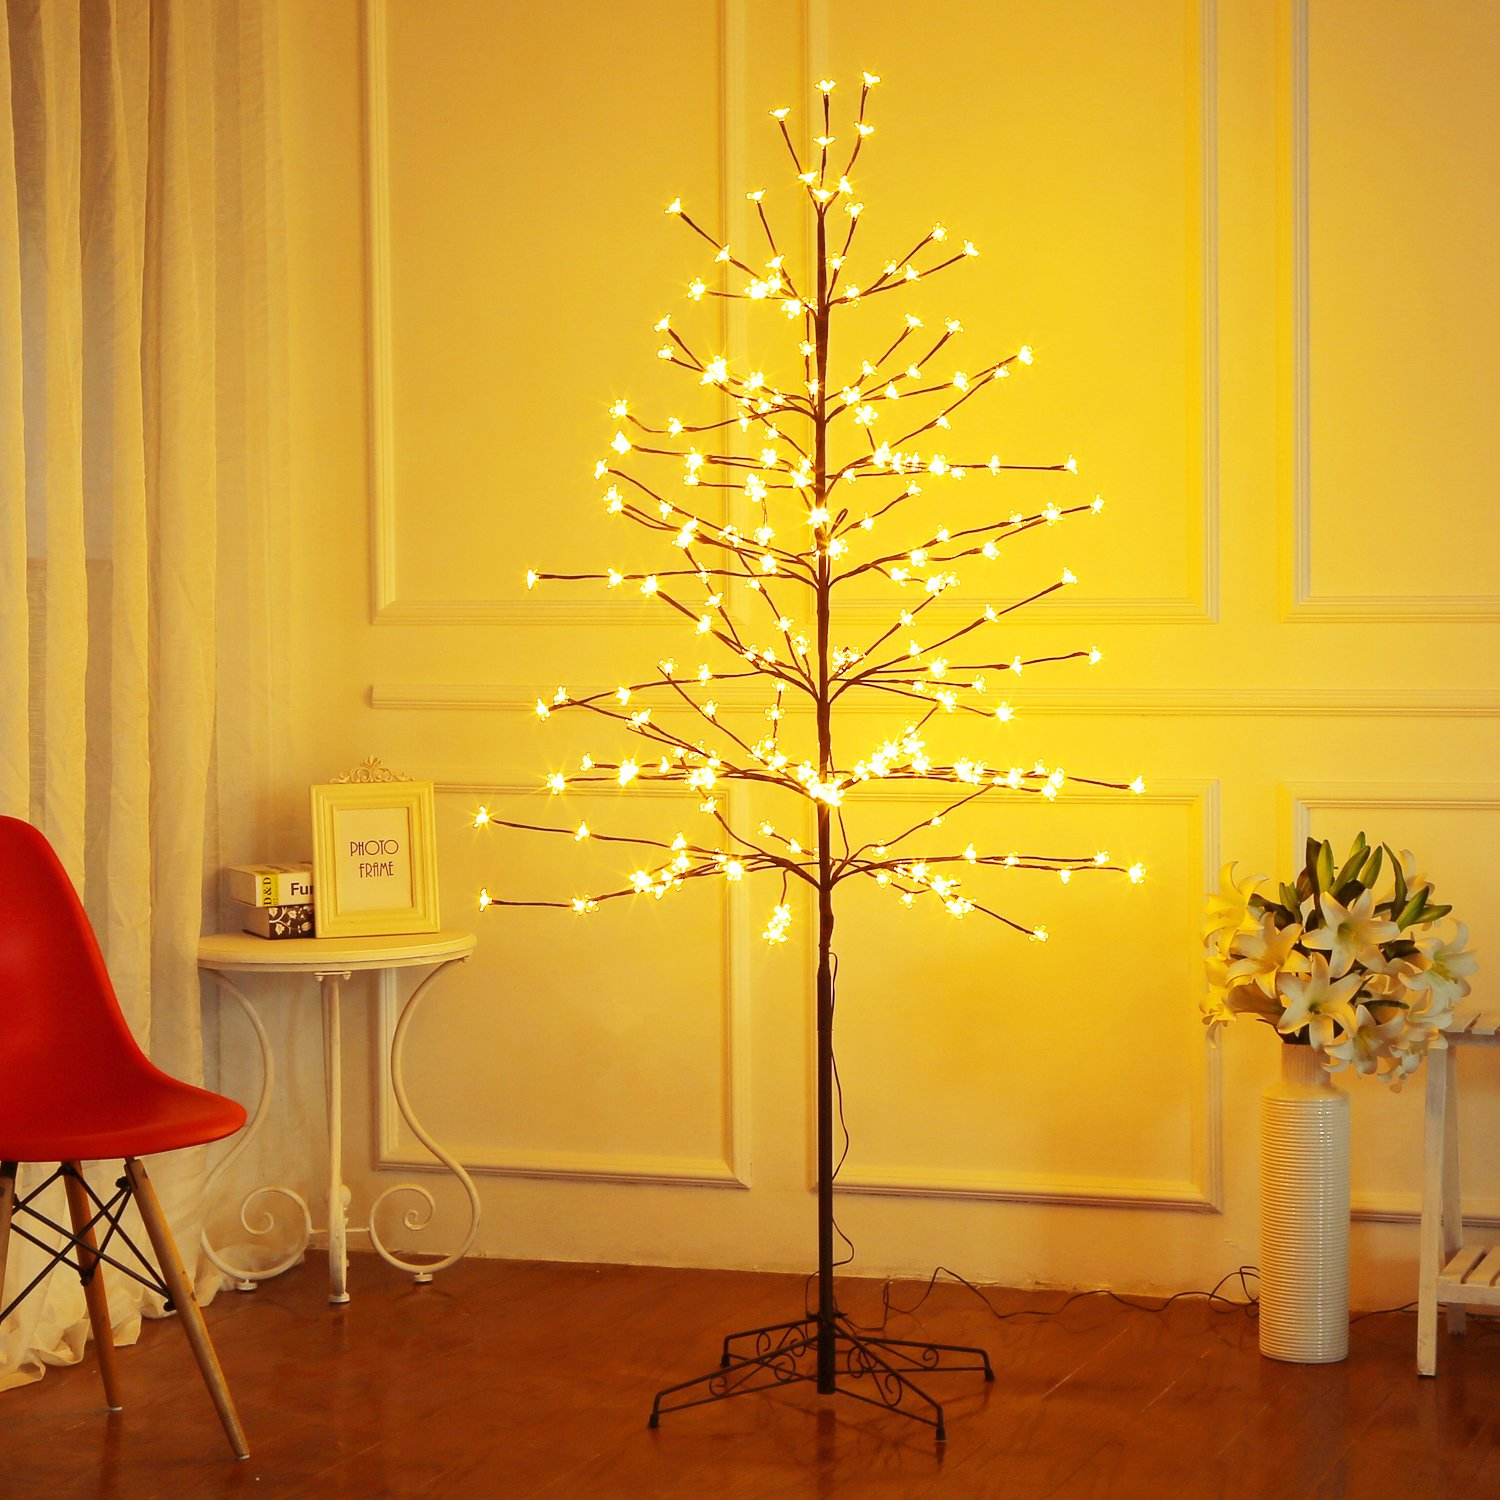 cb43648d3d7 Amazon.com  Bolylight LED Cherry Blossom Tree 6ft 208L   Indoor and Outdoor  Decoration Lighted Tree for Bedroom Party Wedding Office Home Warm White   Home   ...